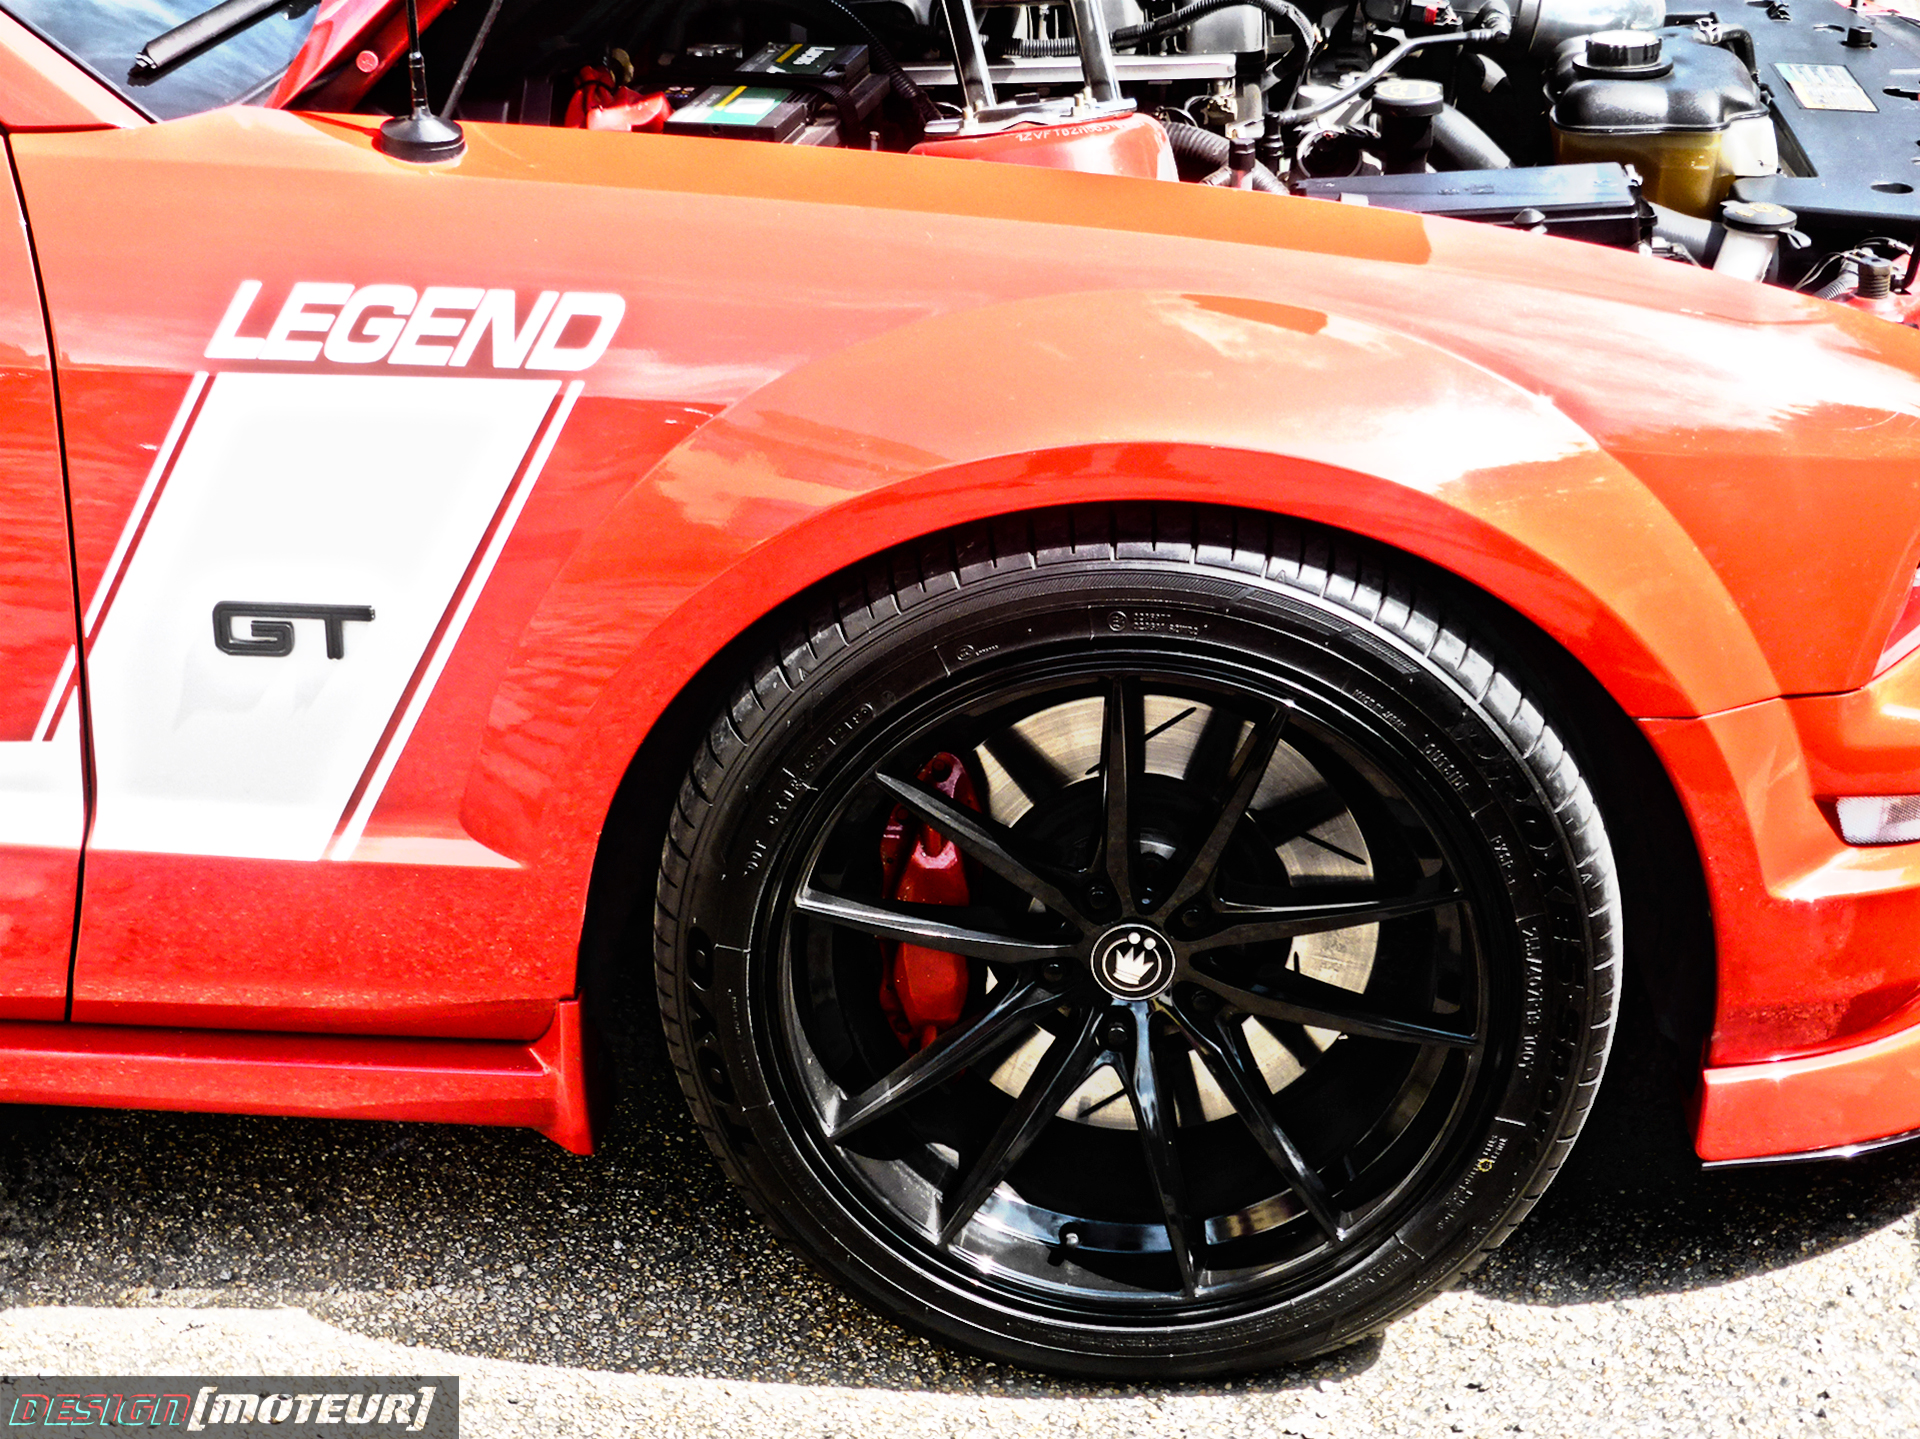 Ford Mustang GT Legend - wheel - US Cars and Bikes 2019 - photo ELJ DESIGNMOTEUR